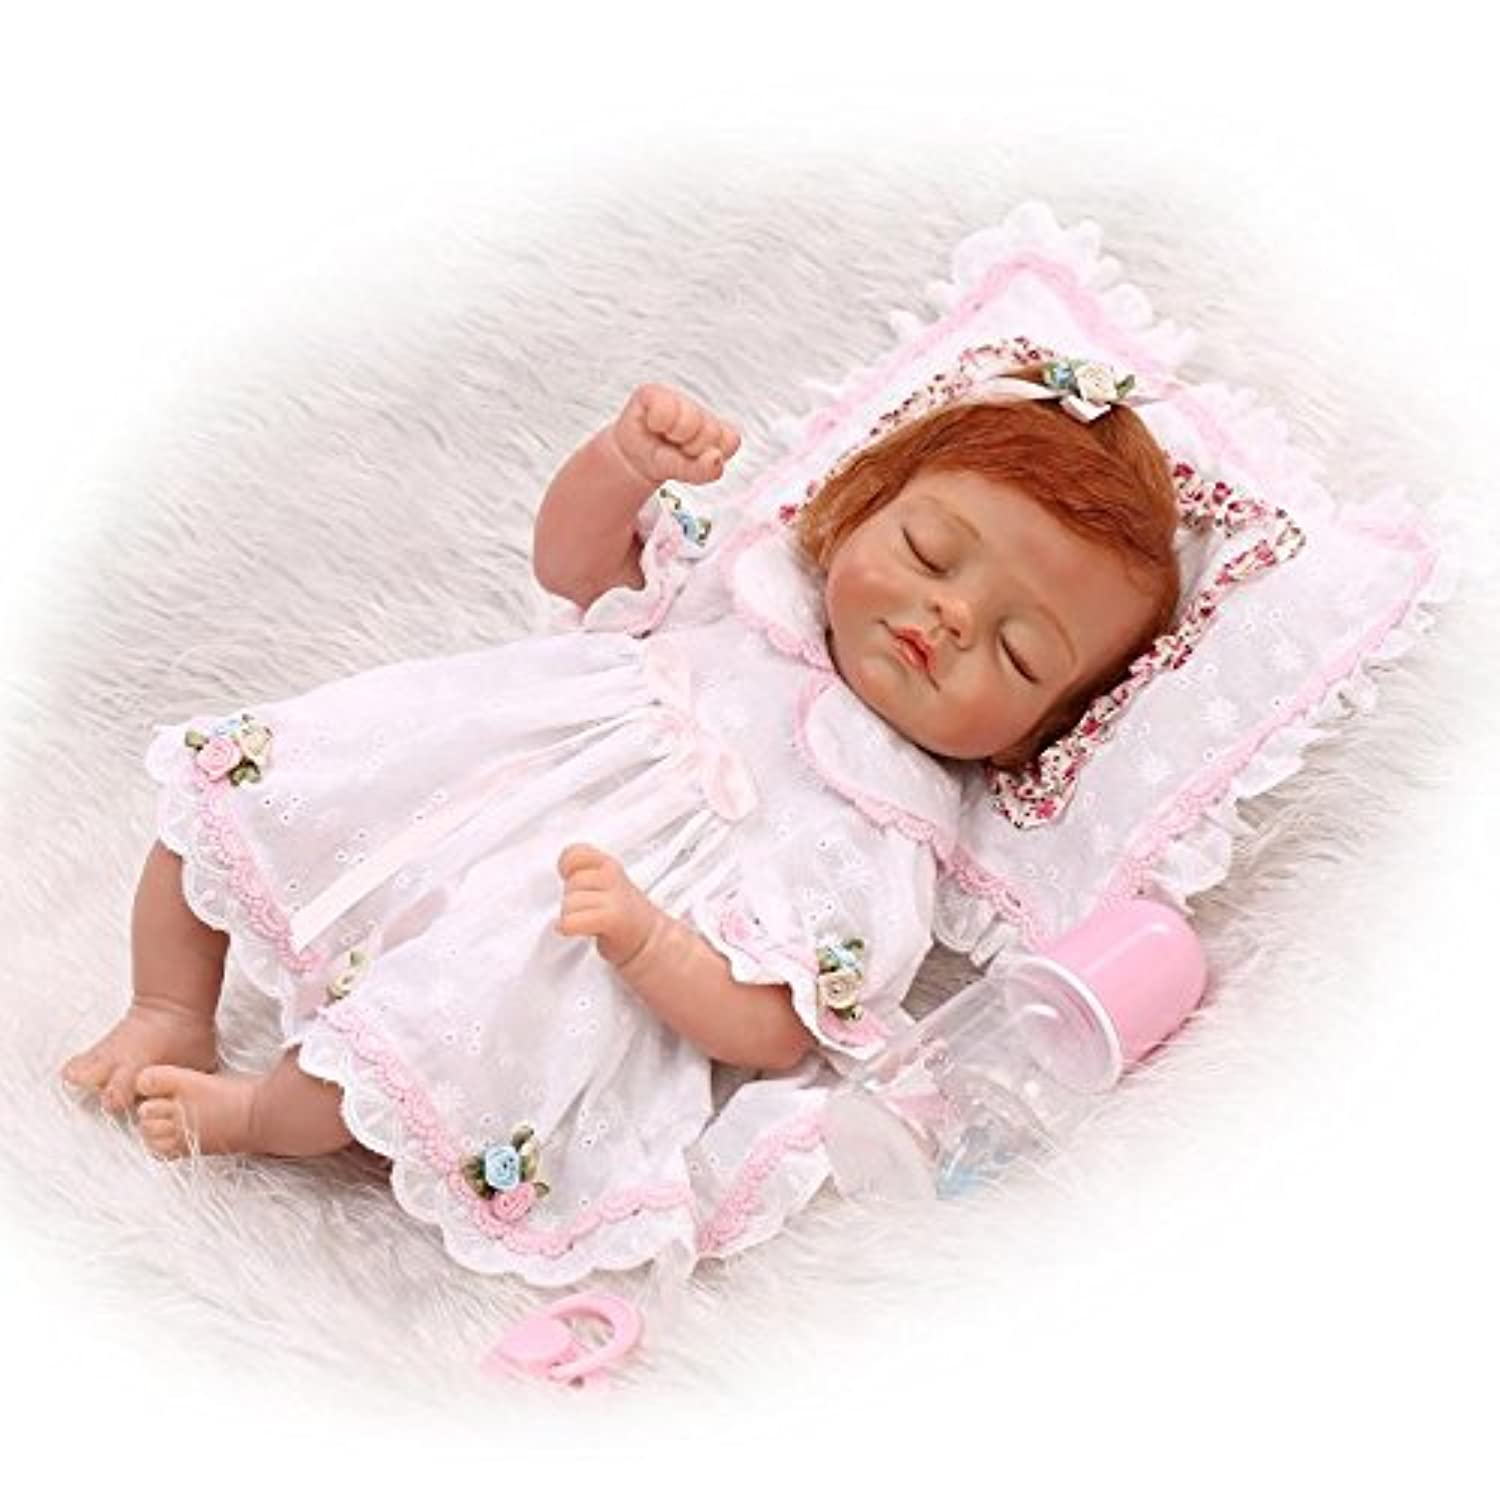 新生児Sleeping Fake Baby Girl So Truly Real Lifelike Reborn人形Crulyモヘア、子供17インチNursery Toy with her枕